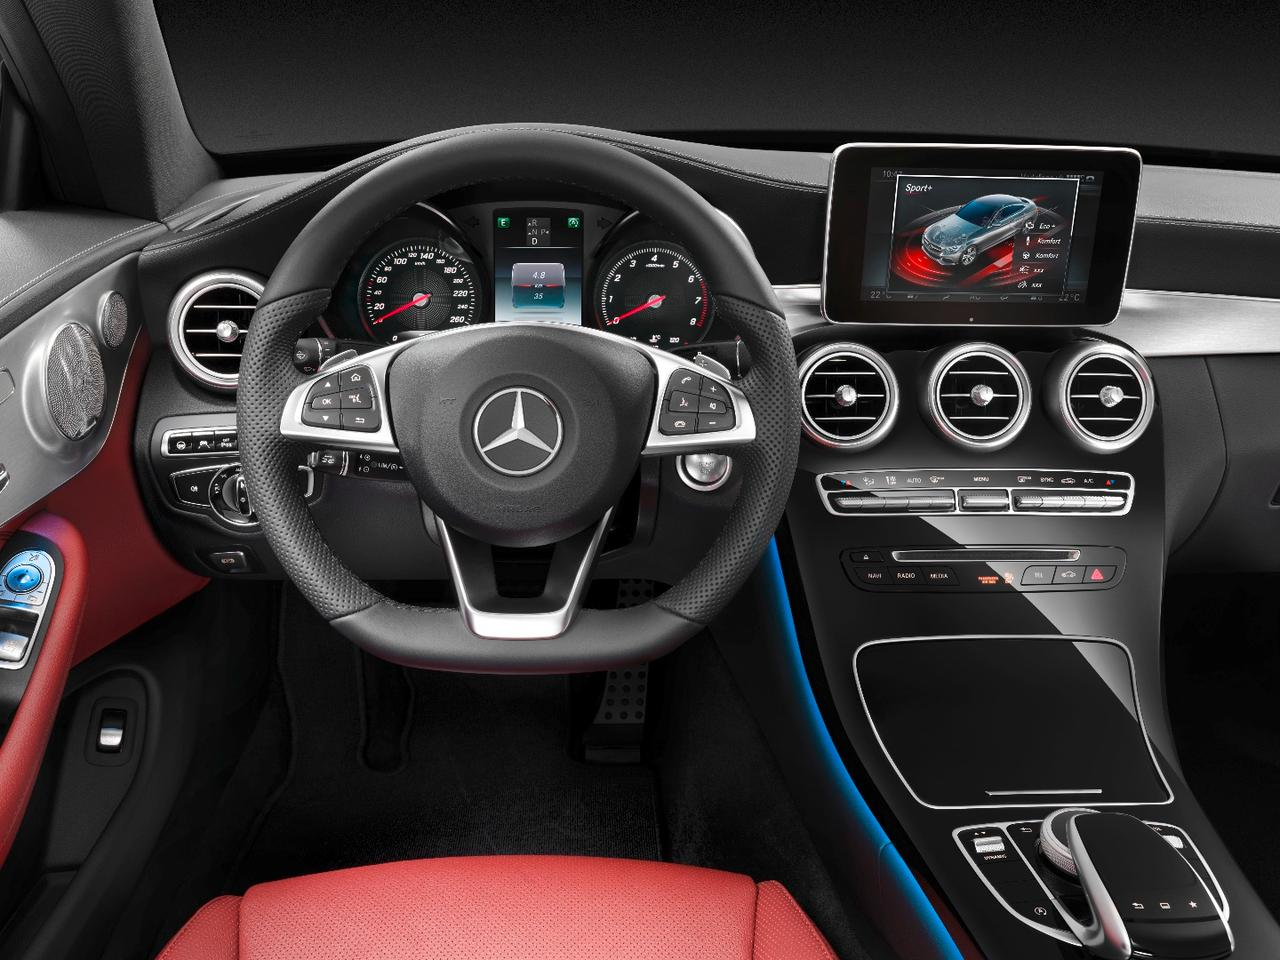 The C-Class Coupe's interior is almost identical to the sedan's